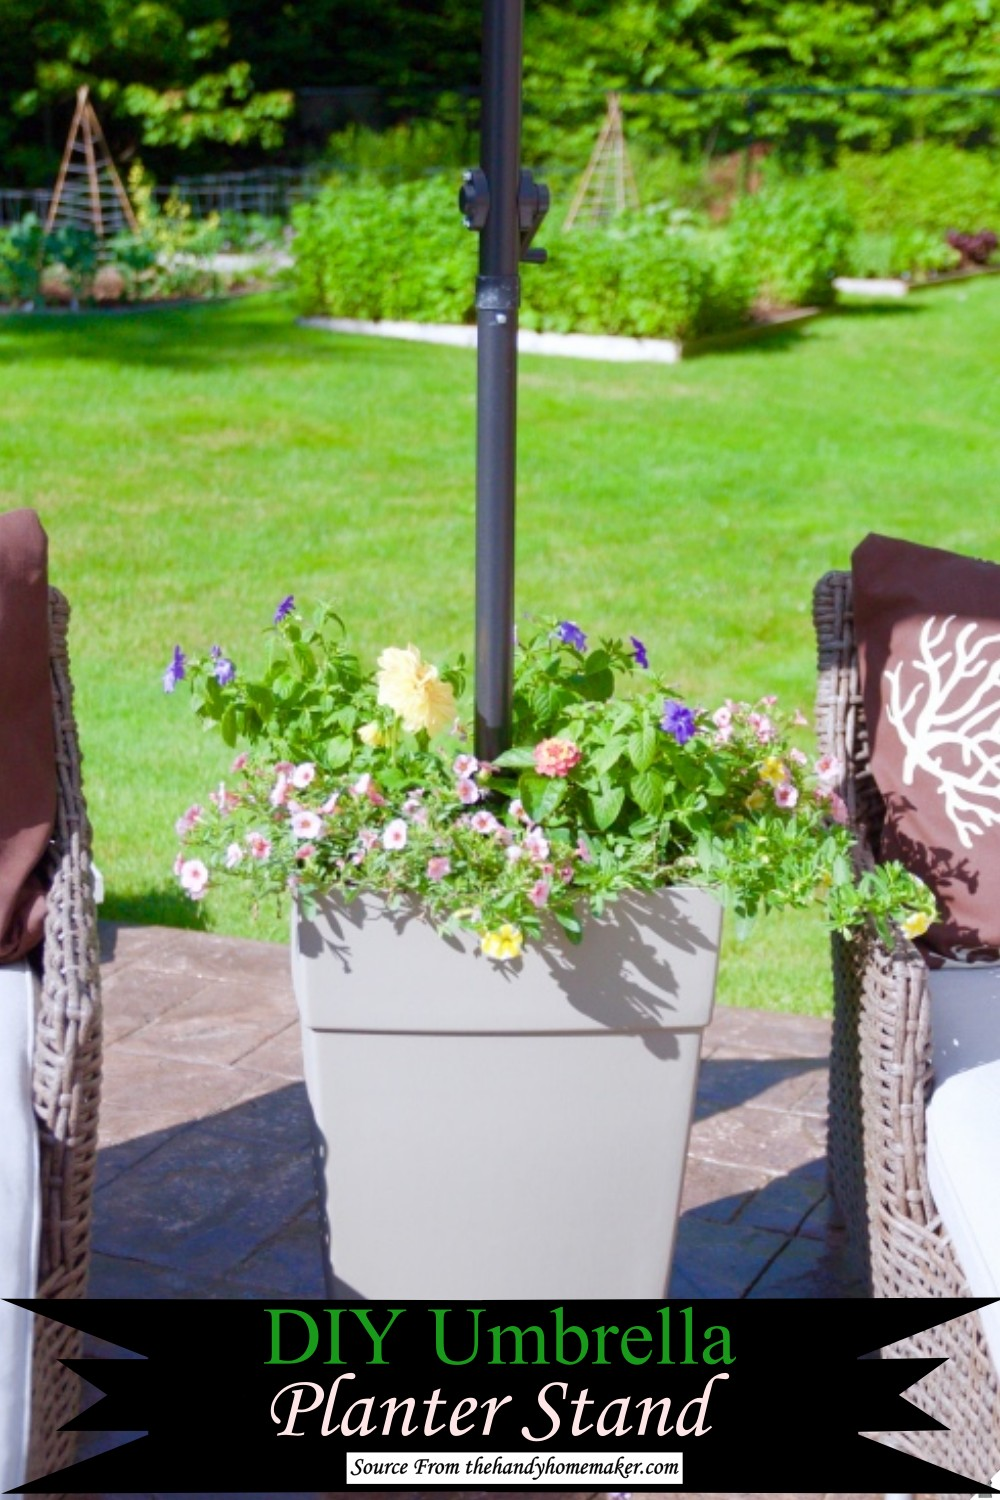 Parasol Stand Doubled as planter